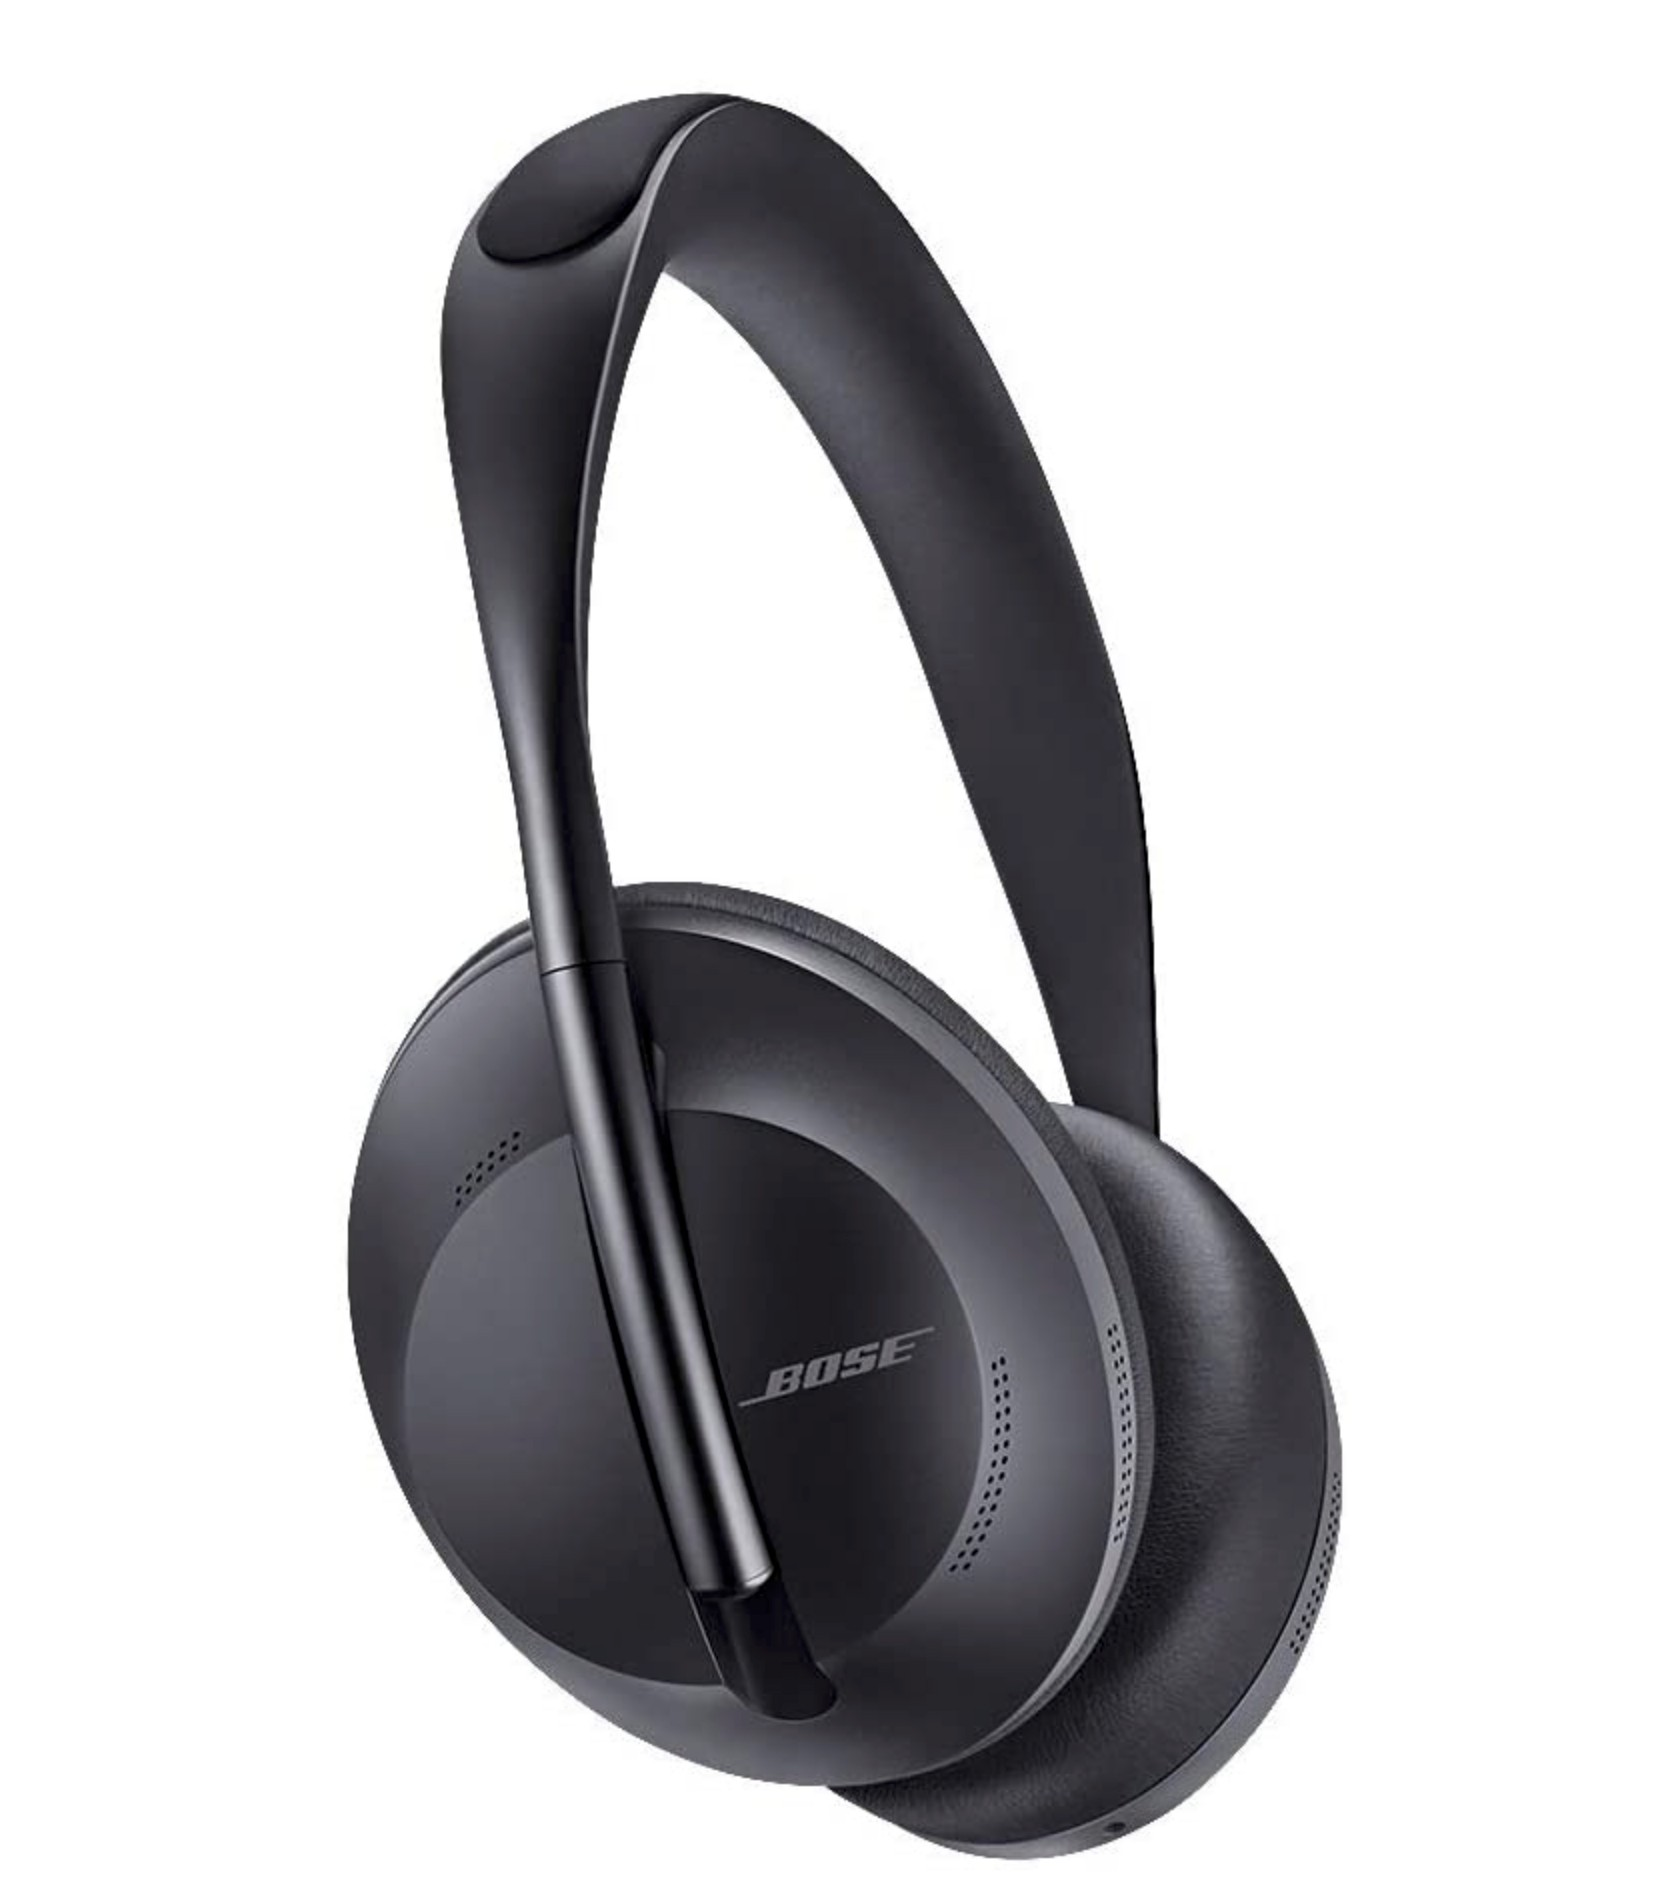 Bose Headphones 700 Noise-Canceling Bluetooth Headphones